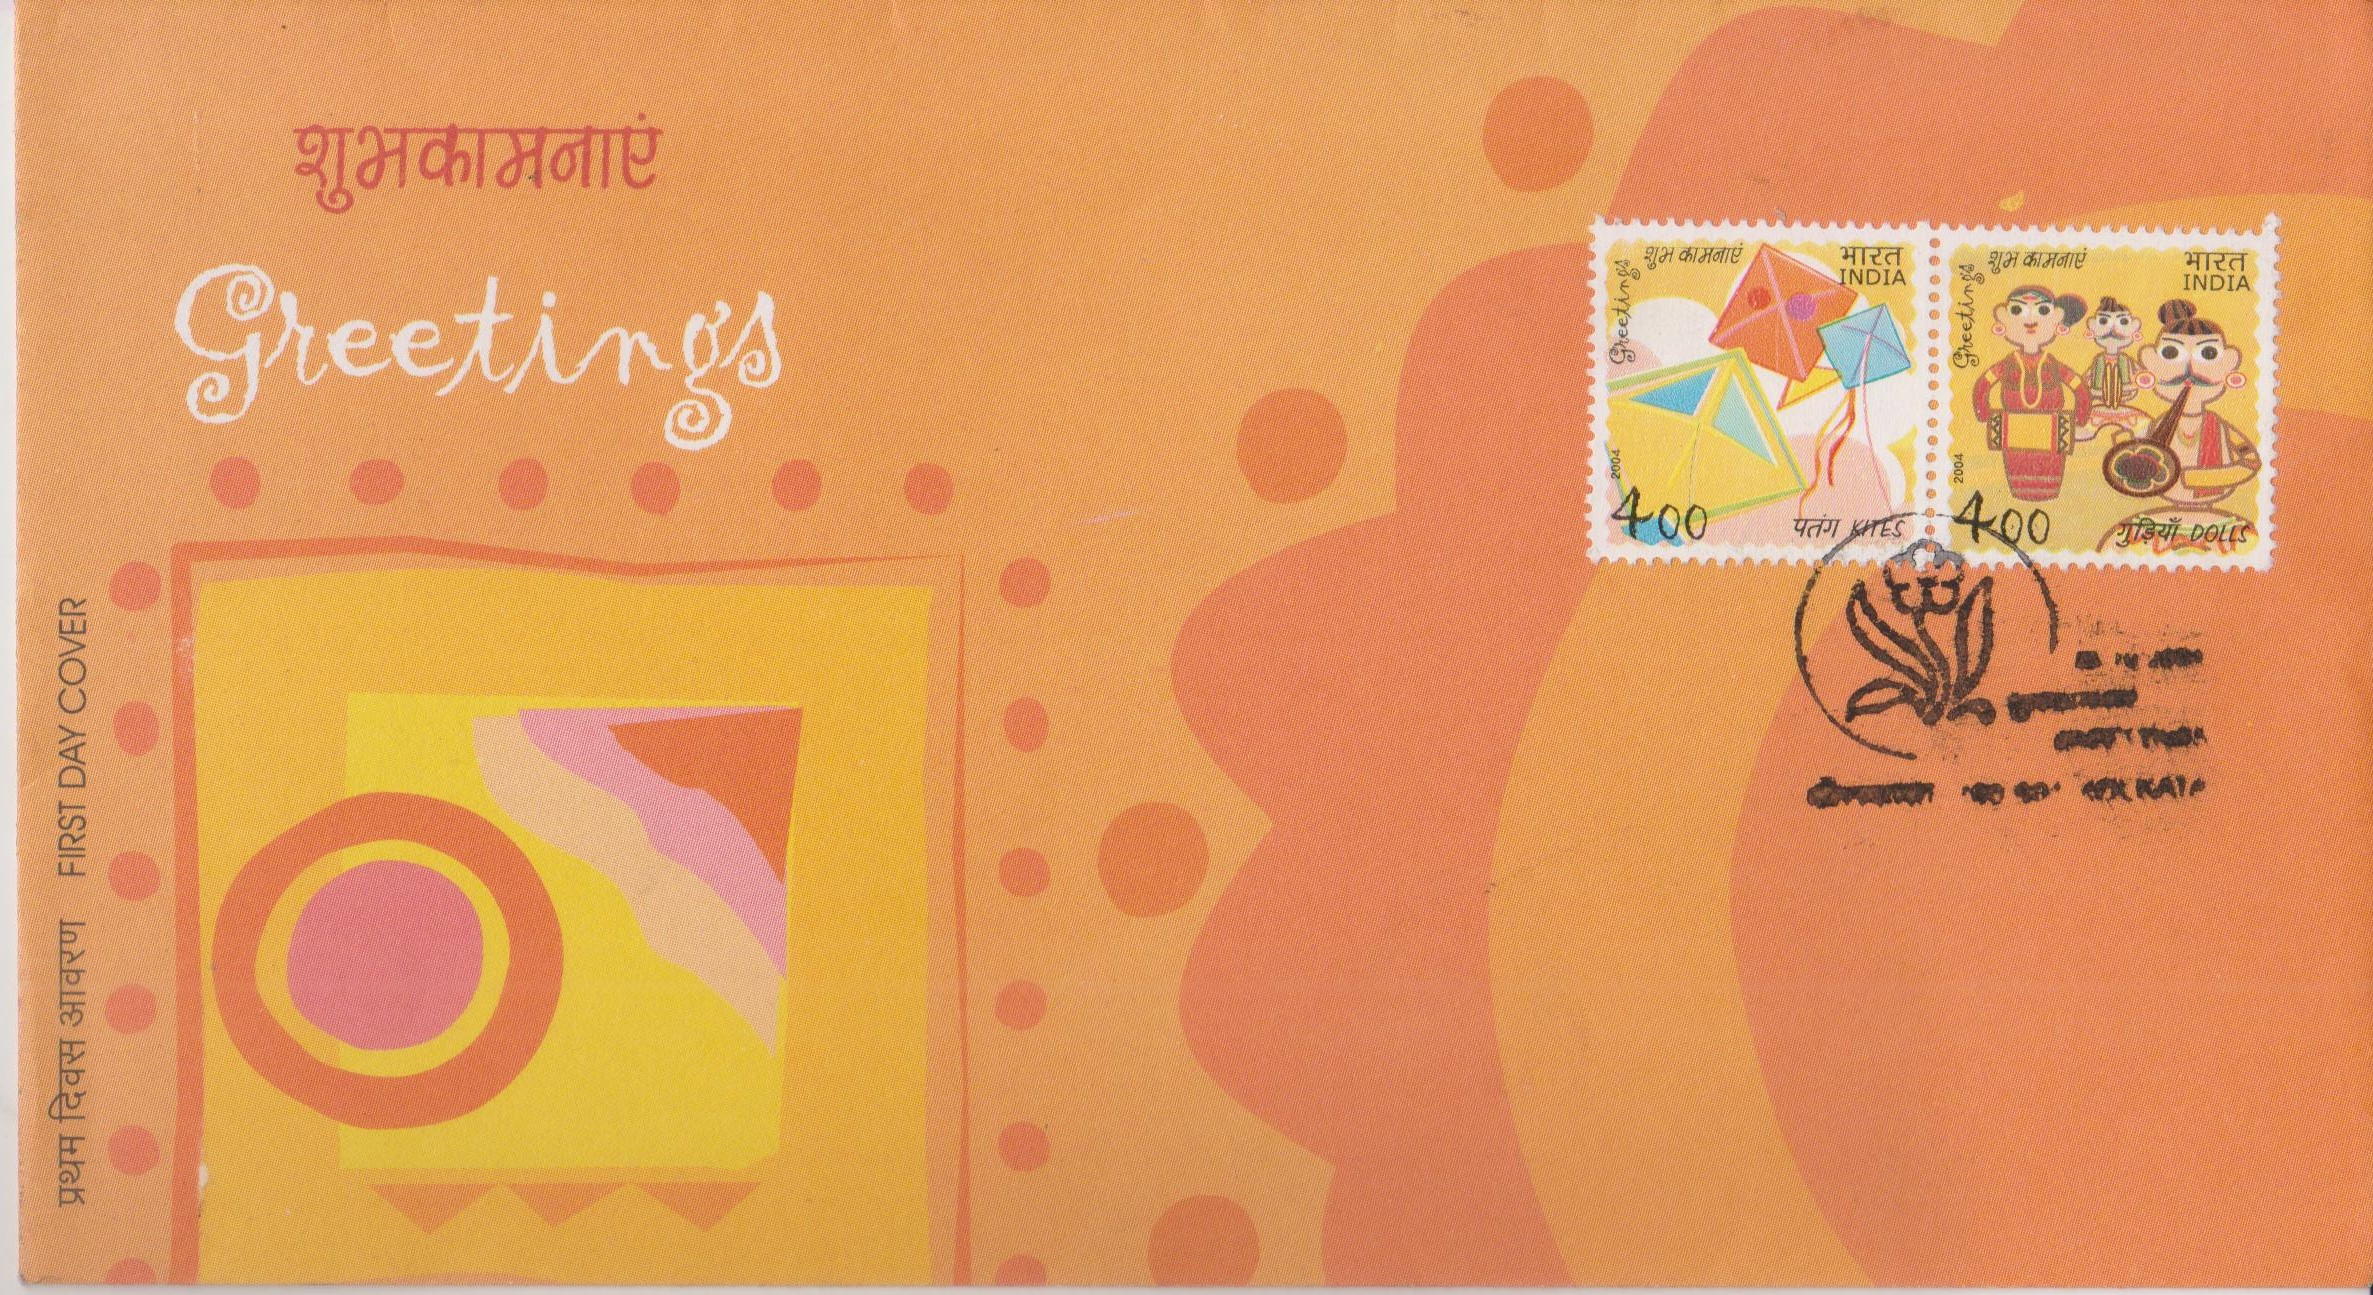 India greetings 2004 issued by india m4hsunfo